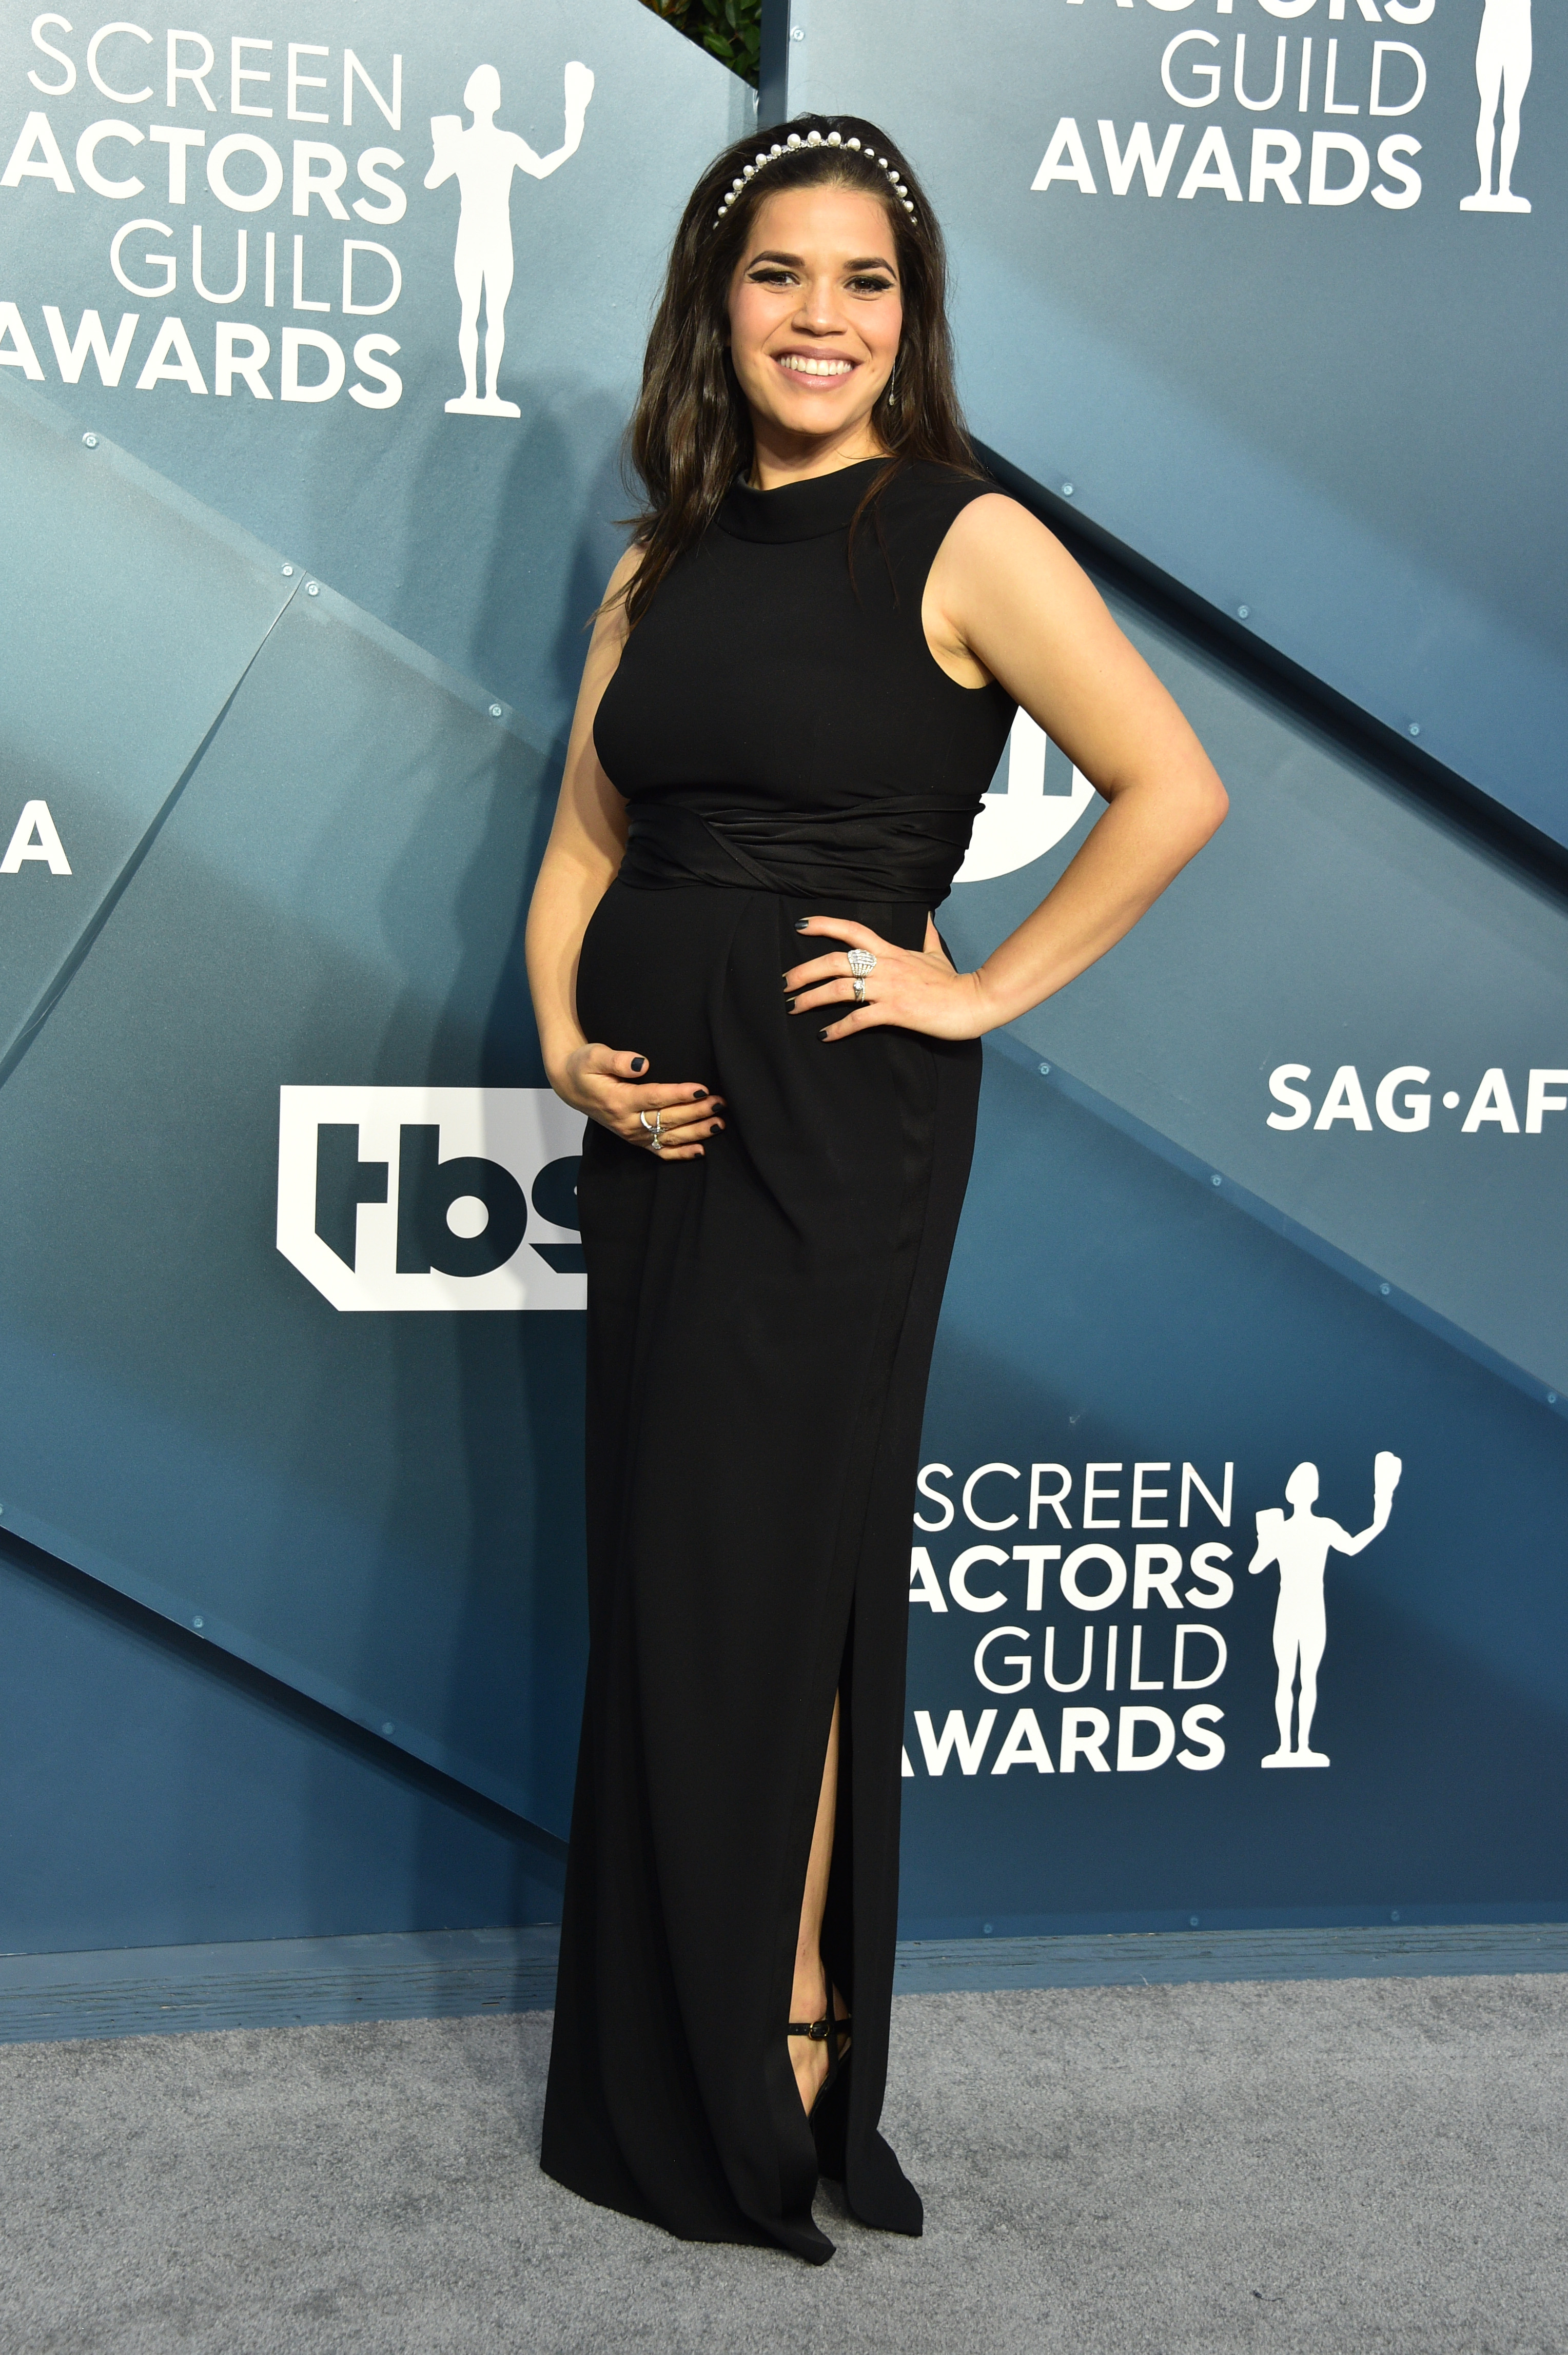 LOS ANGELES, CALIFORNIA - JANUARY 19: America Ferrera attends the 26th Annual Screen ActorsGuild Awards at The Shrine Auditorium on January 19, 2020 in Los Angeles, California. 721430 (Photo by Gregg DeGuire/Getty Images for Turner)